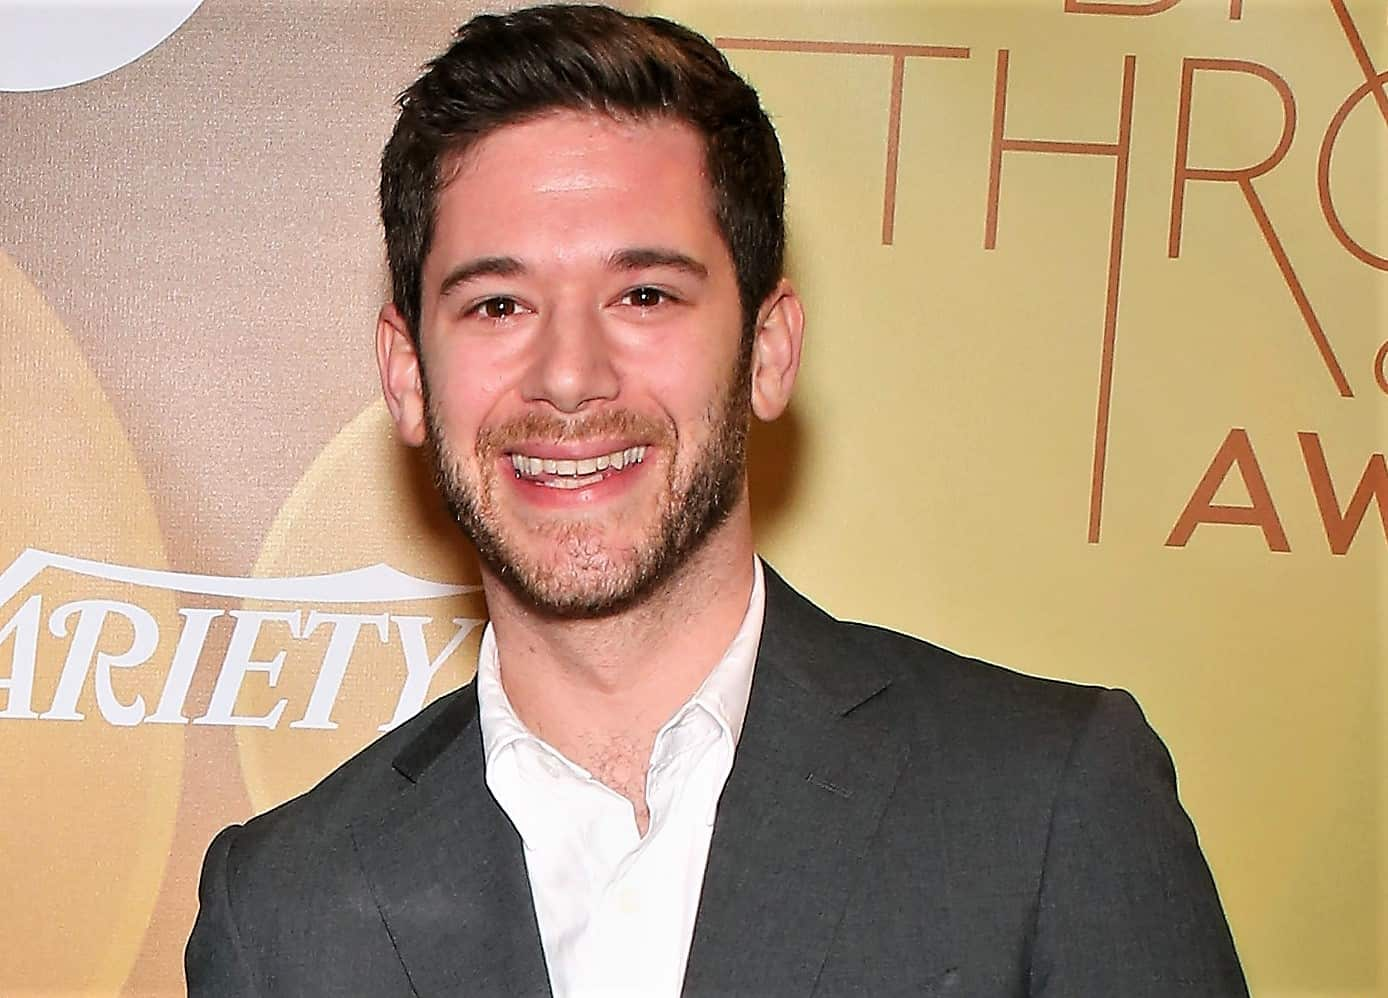 Co-founder Of Vine And HQ Trivia, Colin Kroll Found Dead, Apparently Of Drug Overdose